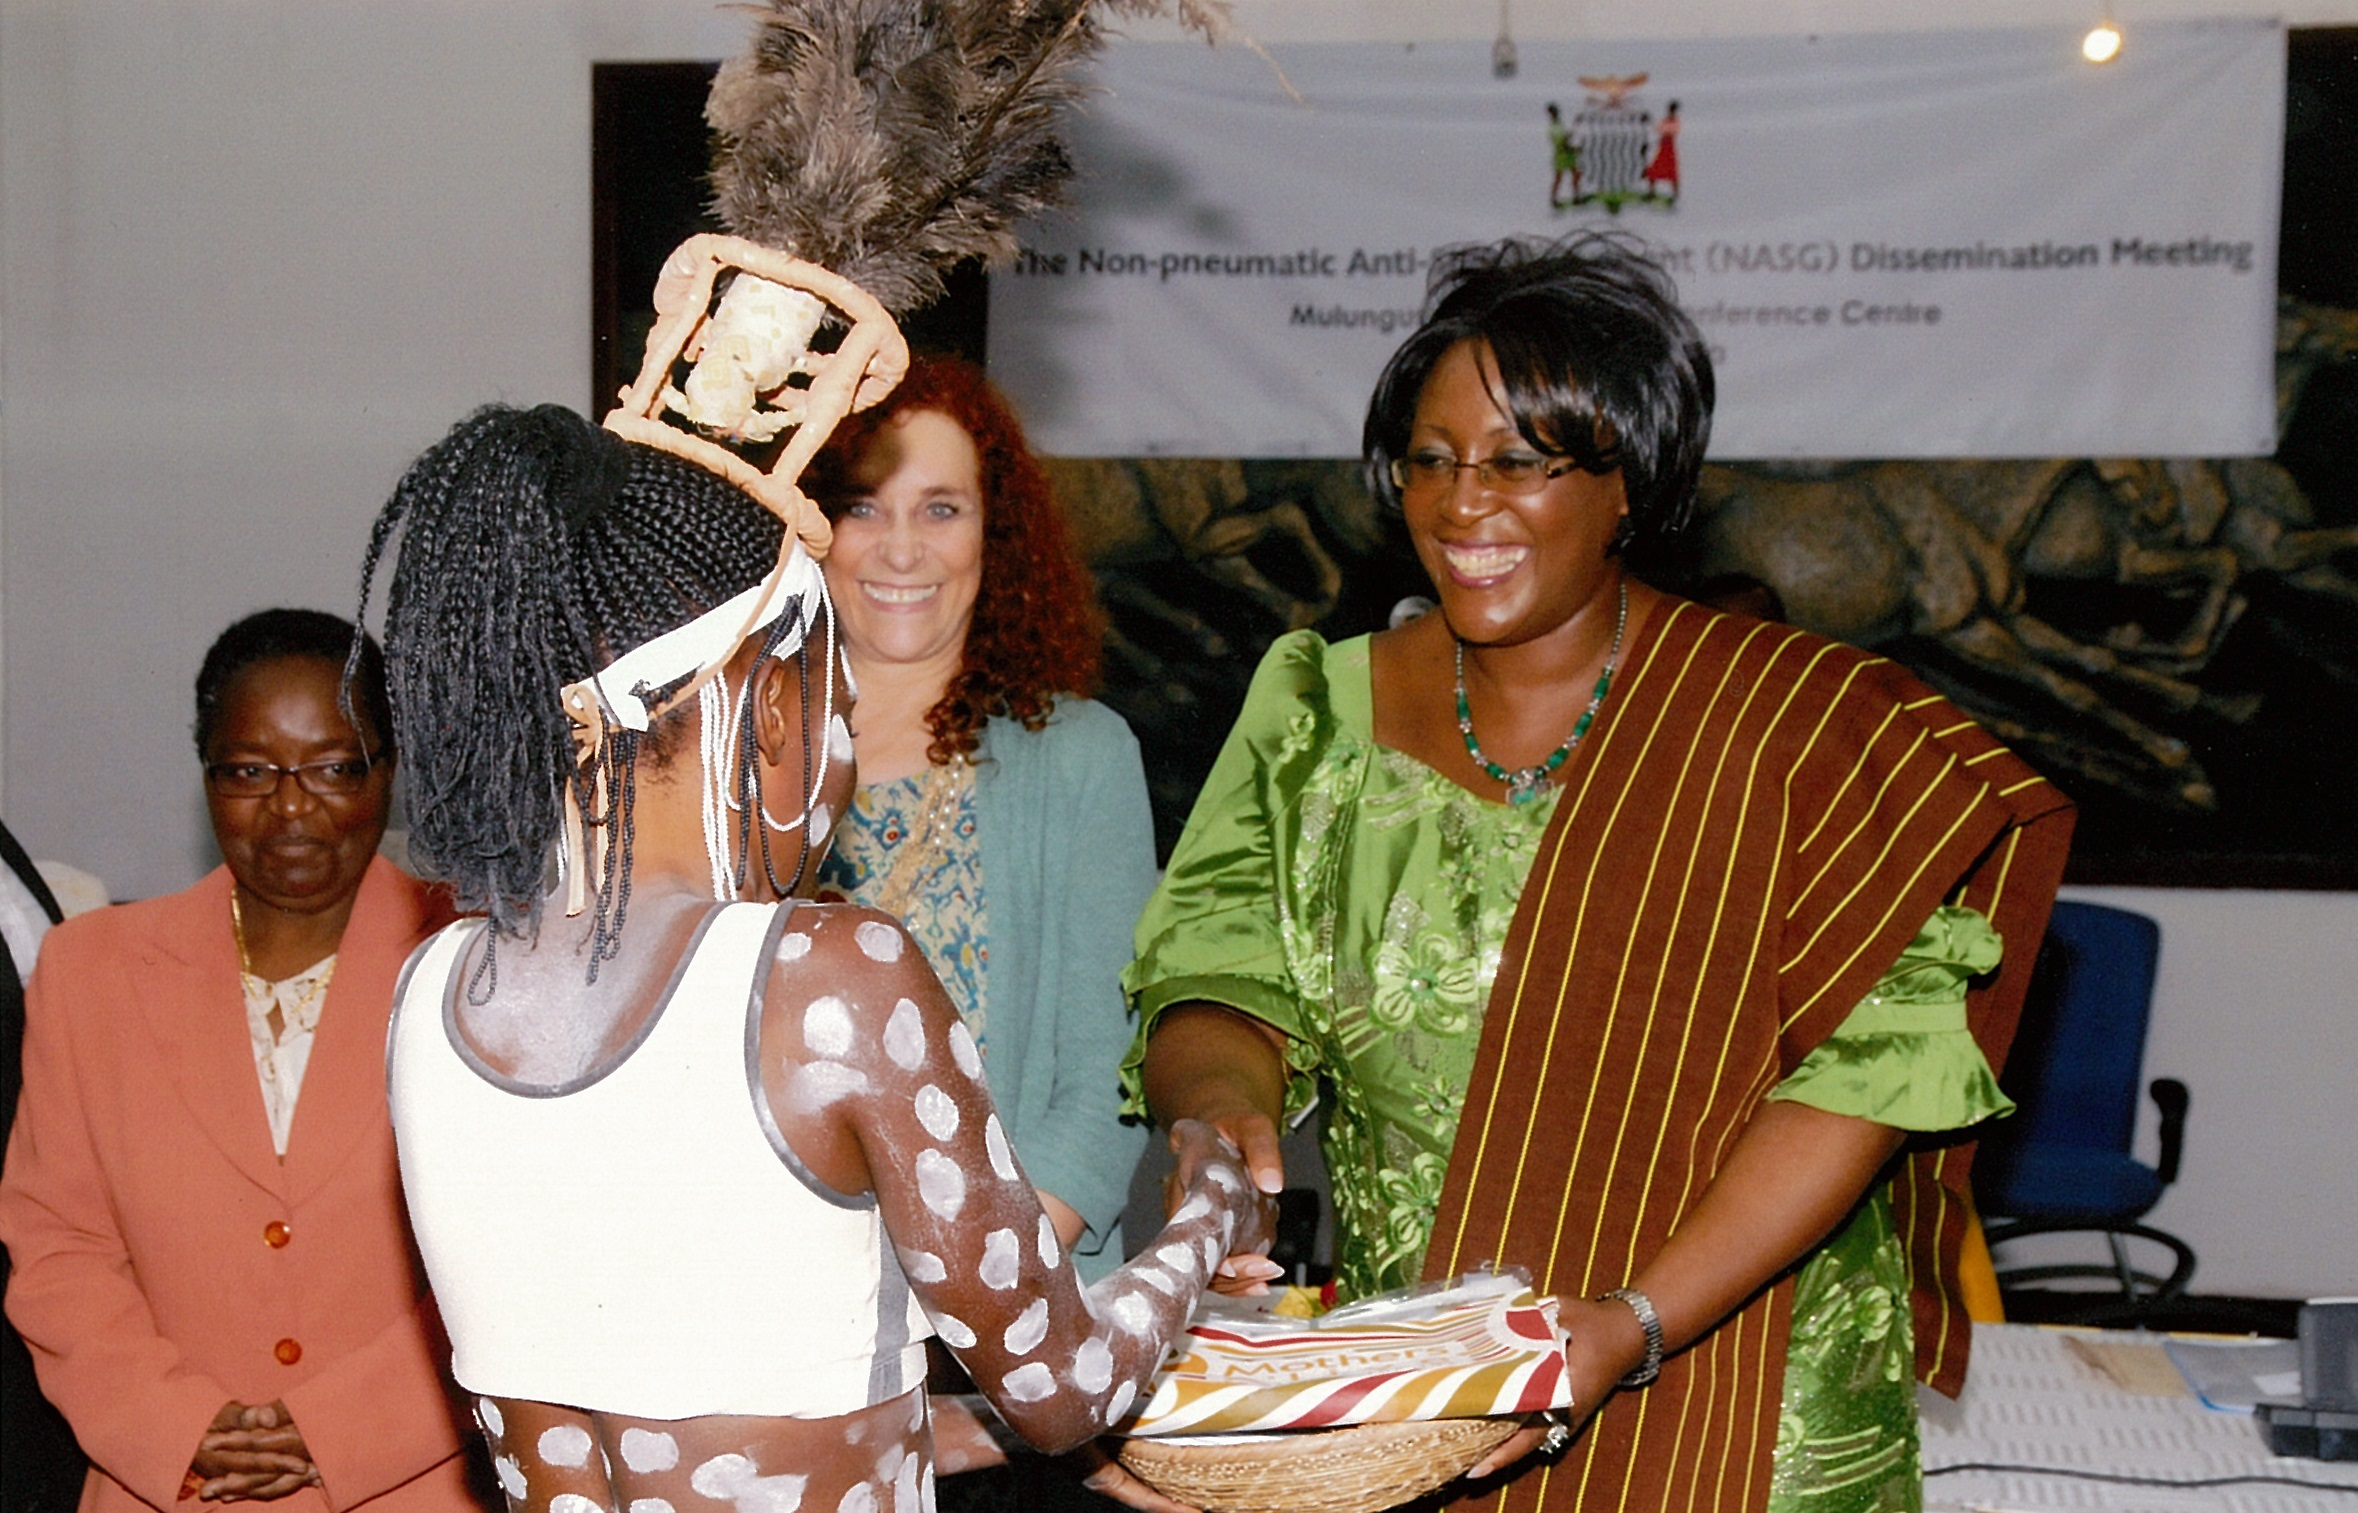 ZambiaFirst Lady, Dr. Christine Kaseba with Dr. Suellen Miller and traditional Zambian dancer at the meeting.